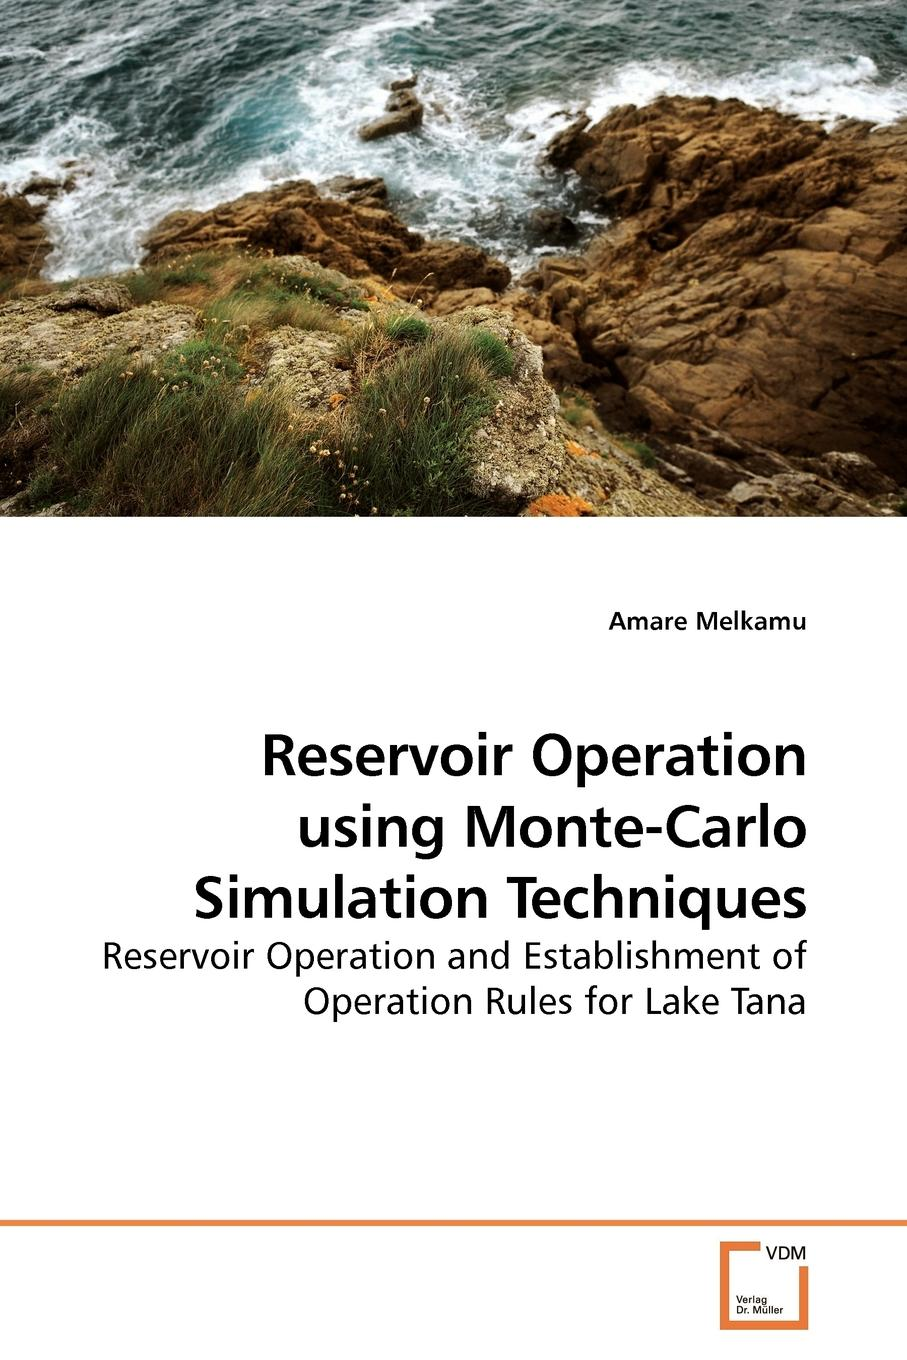 лучшая цена Amare Melkamu Reservoir Operation using Monte-Carlo Simulation Techniques